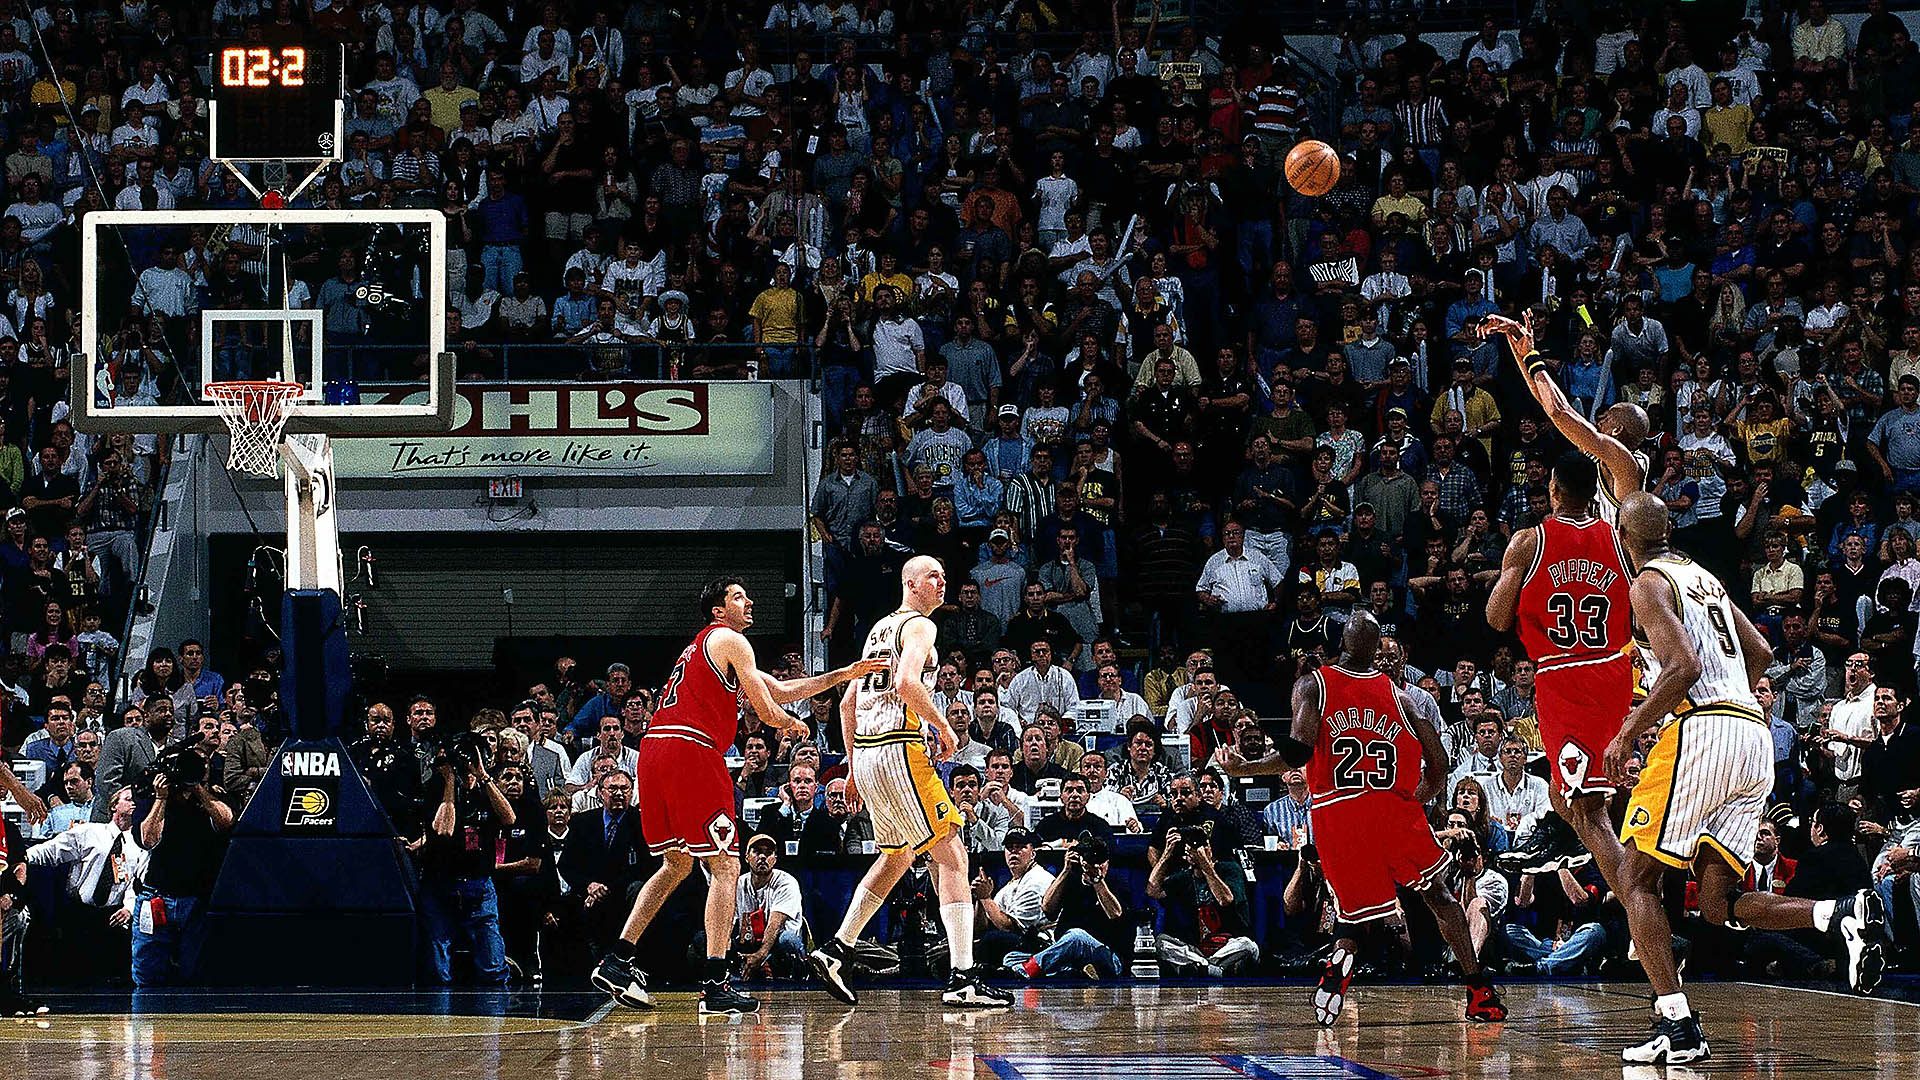 Top Moments: Reggie Miller comes up clutch vs. Chicago